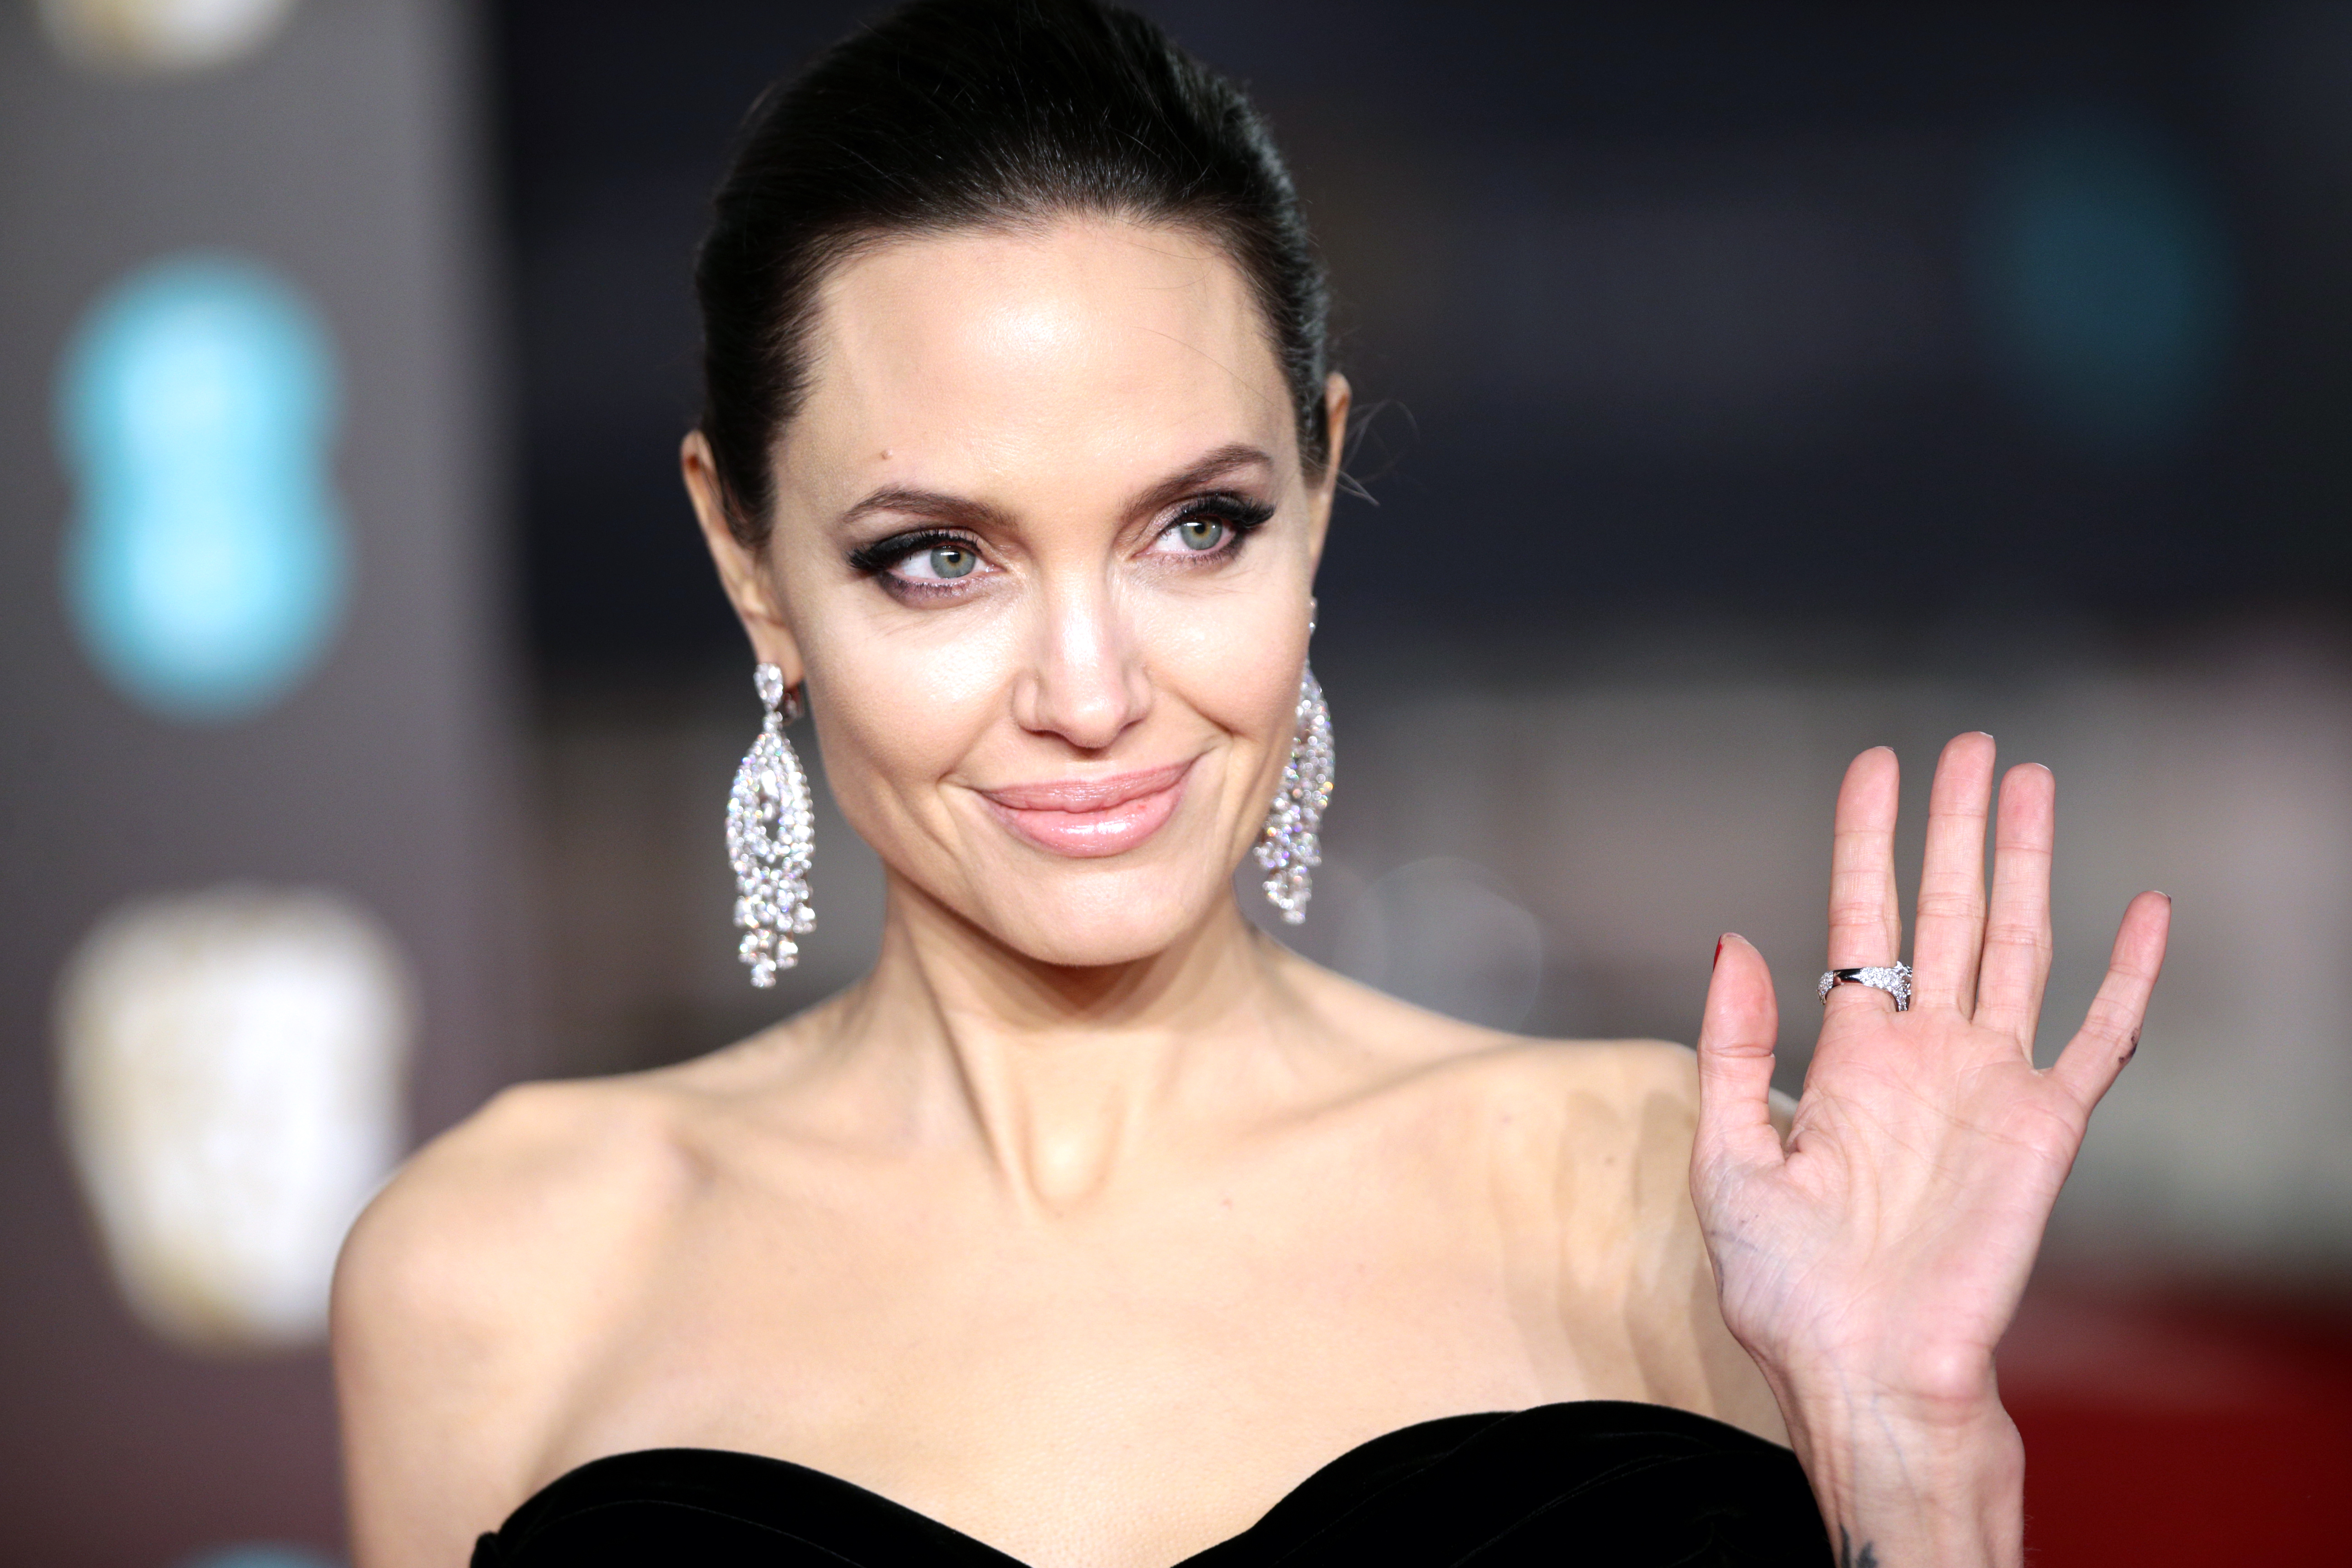 Angelina Jolie wore a seriously sparkly caftan this weekend, and it's a major change for her